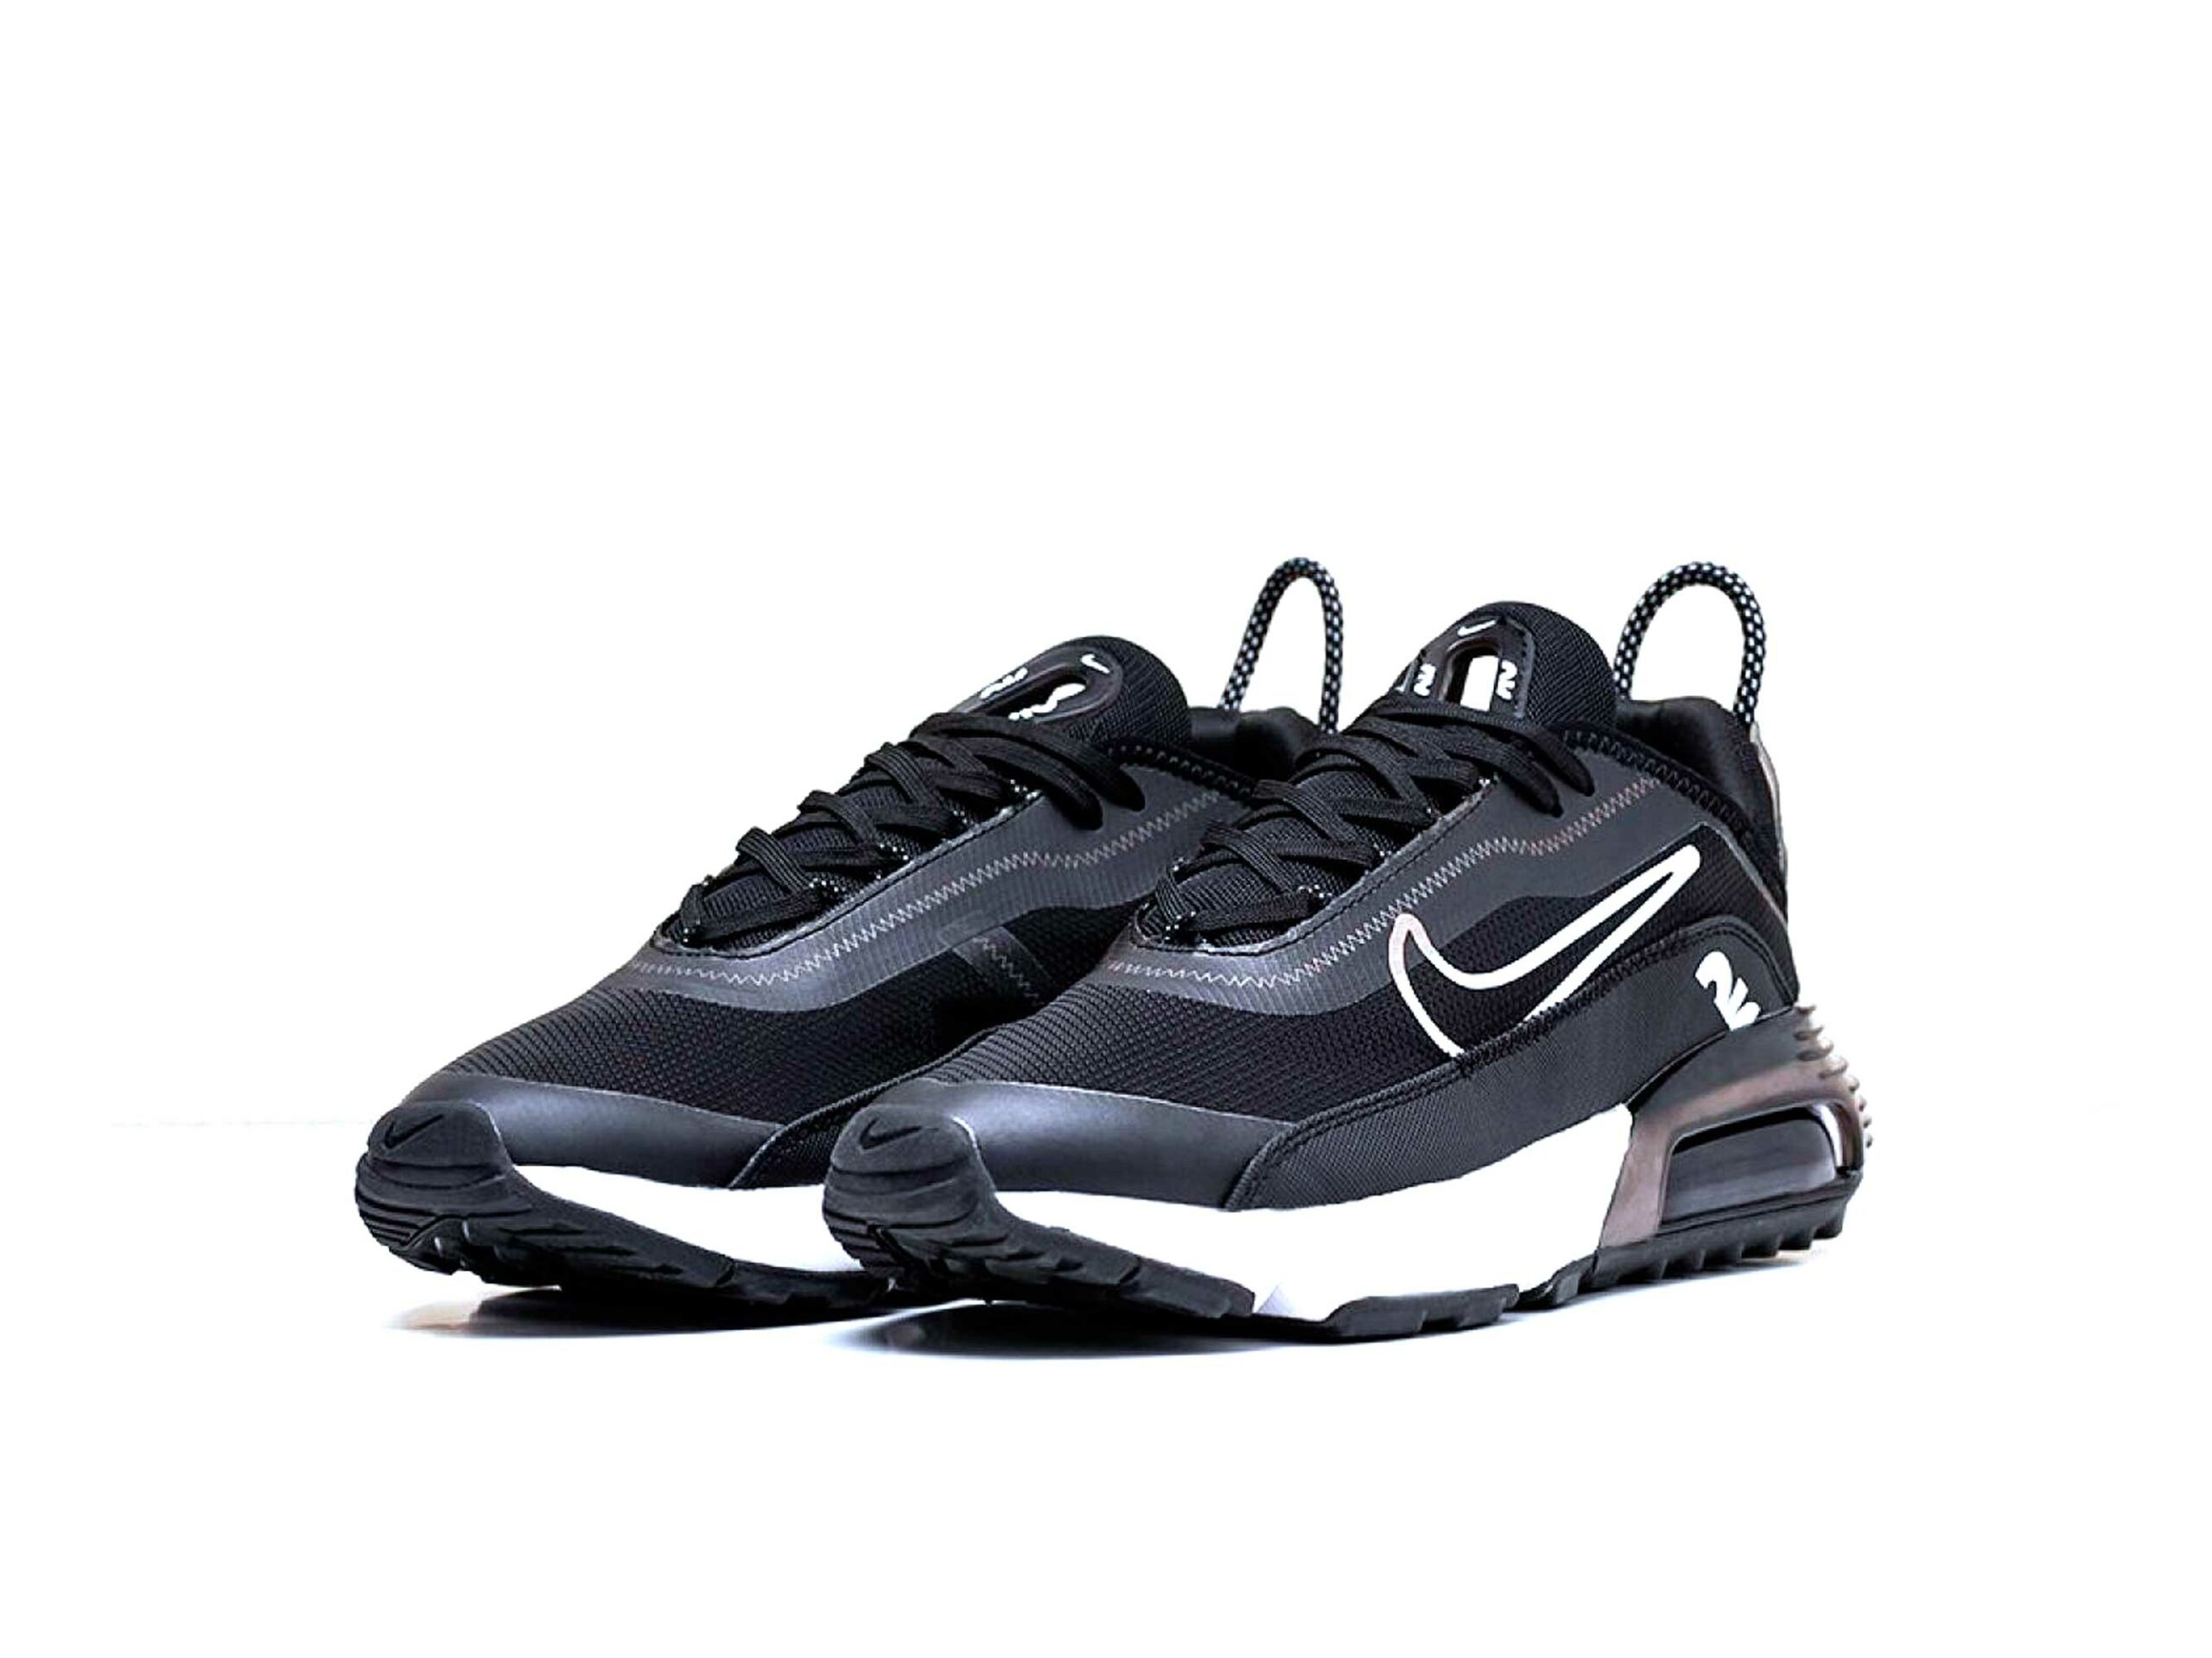 nike air max 2090 black white CT7698_004 купить